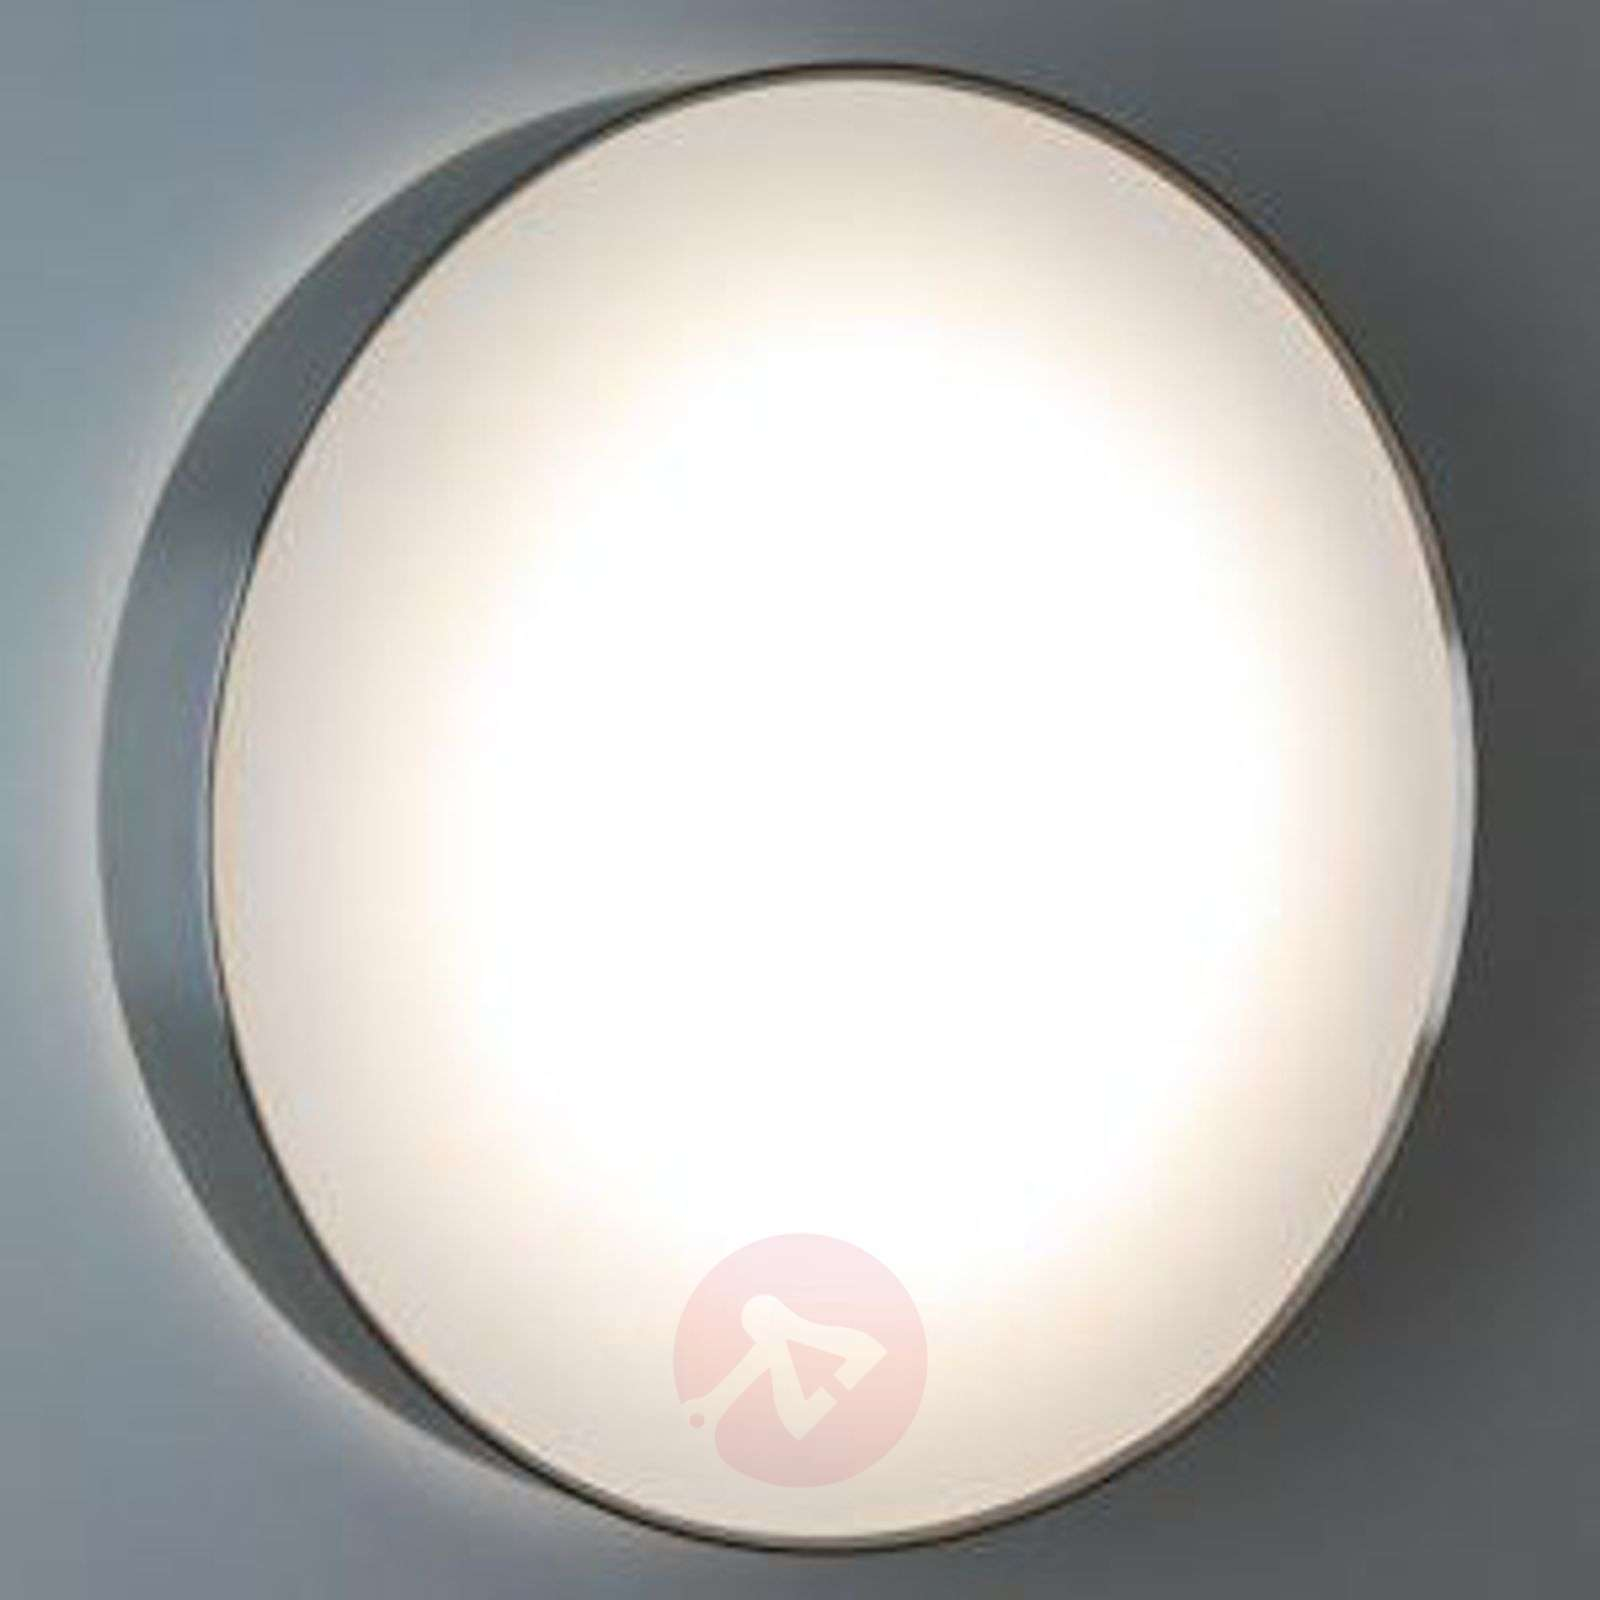 SUN 4 sensor LED stainless steel light, 13 W-1018196X-02